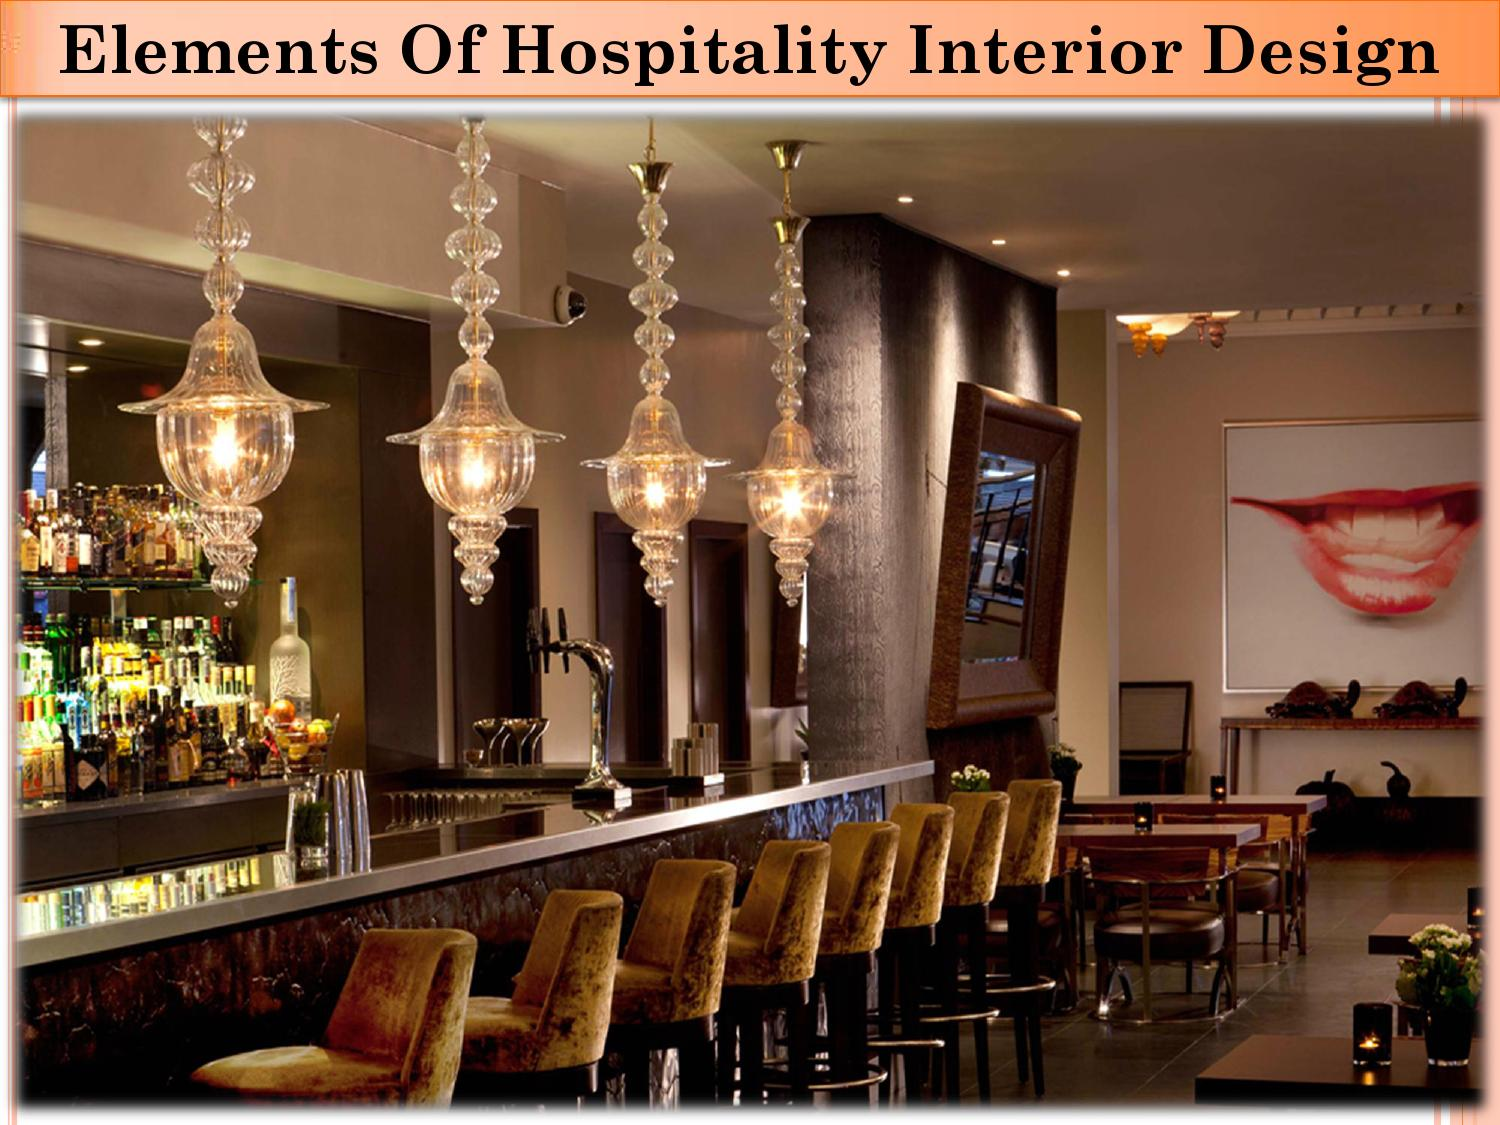 Elements Of Hospitality Interior Design By Protech